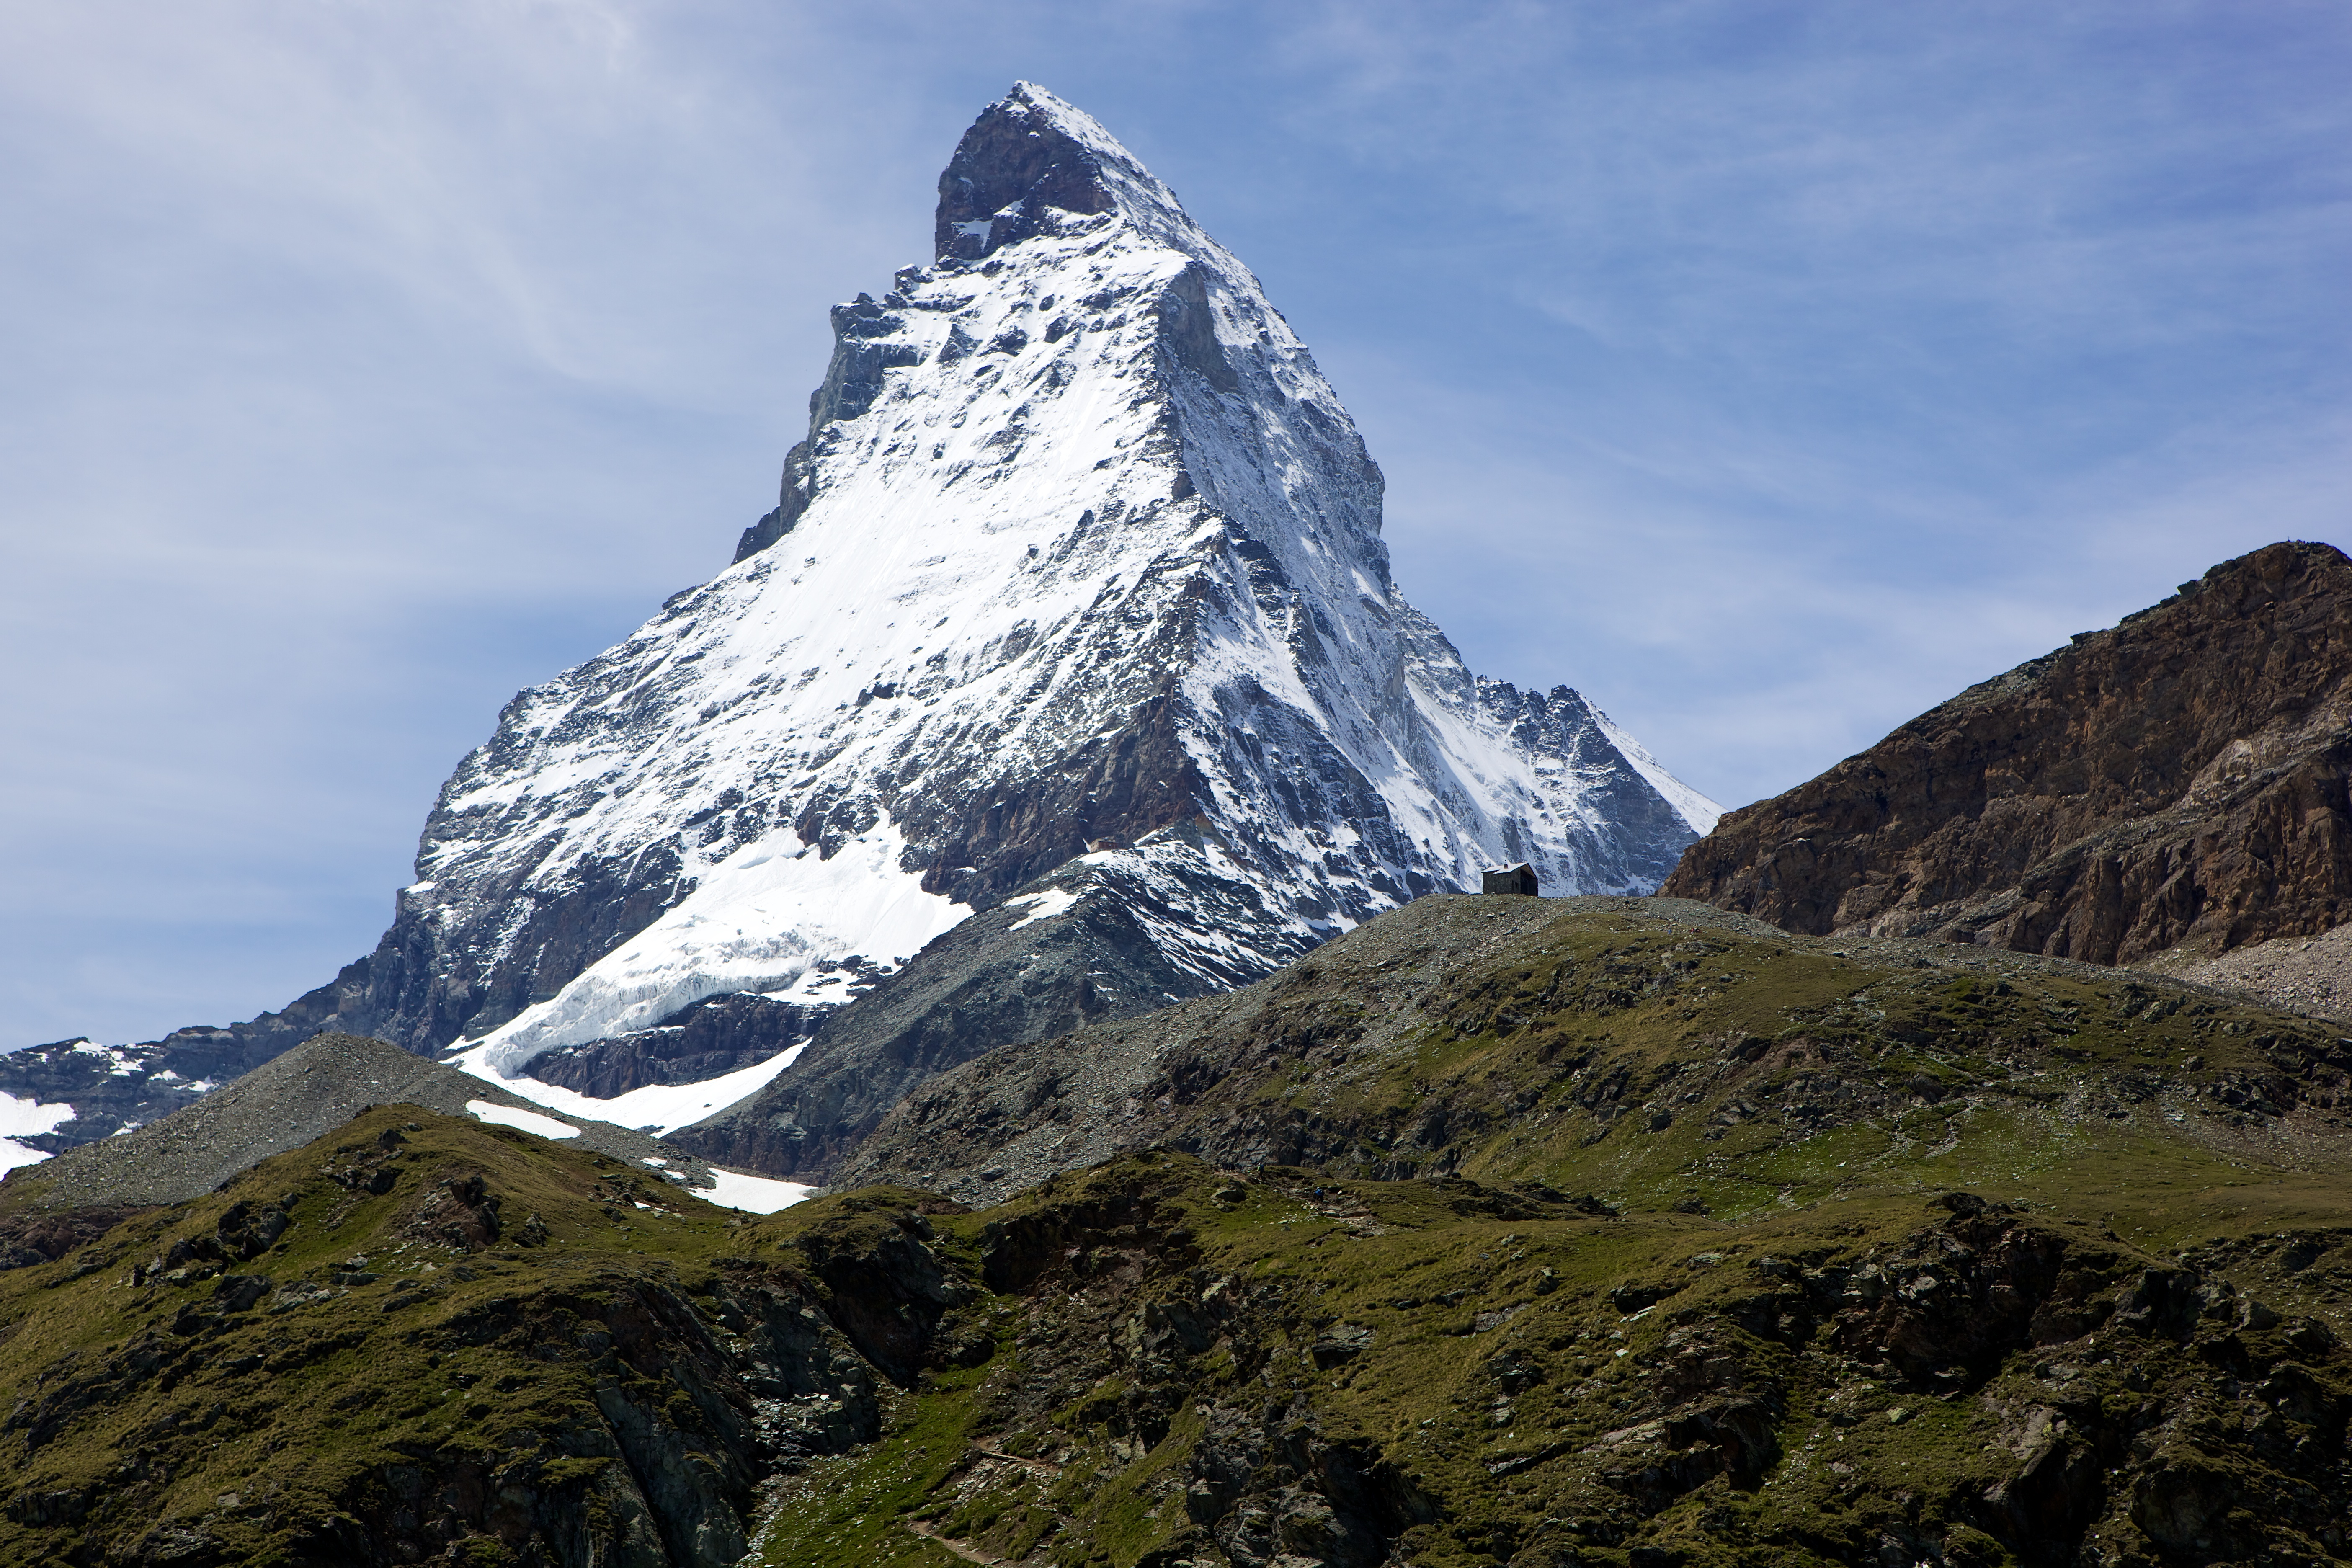 Top 10 mountains you will want to climb and why